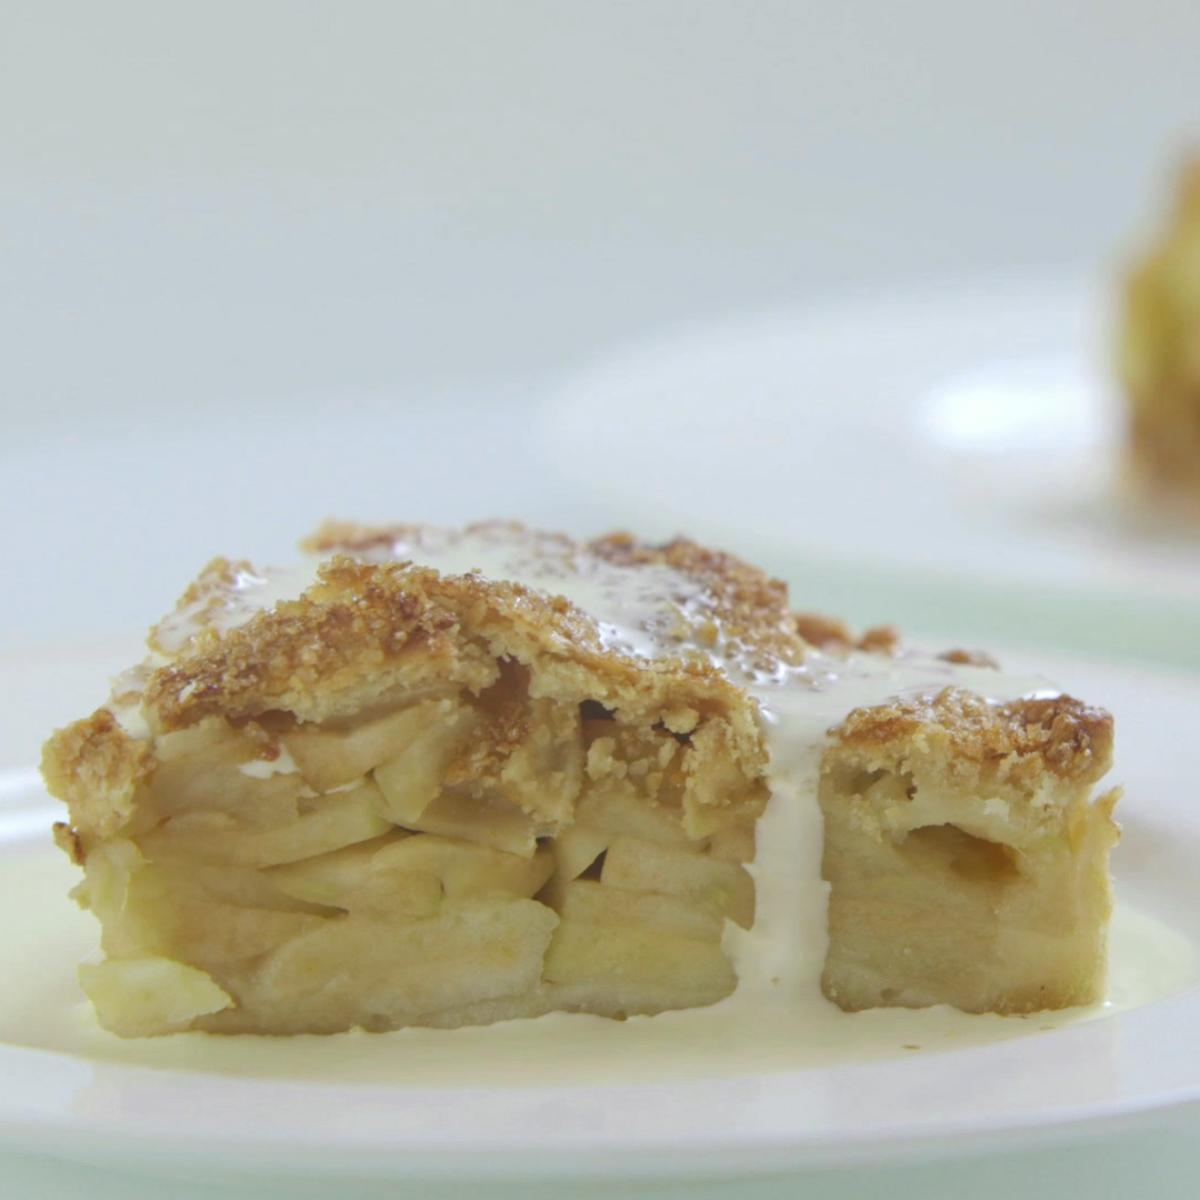 A picture of Delia's English Apple Pie recipe